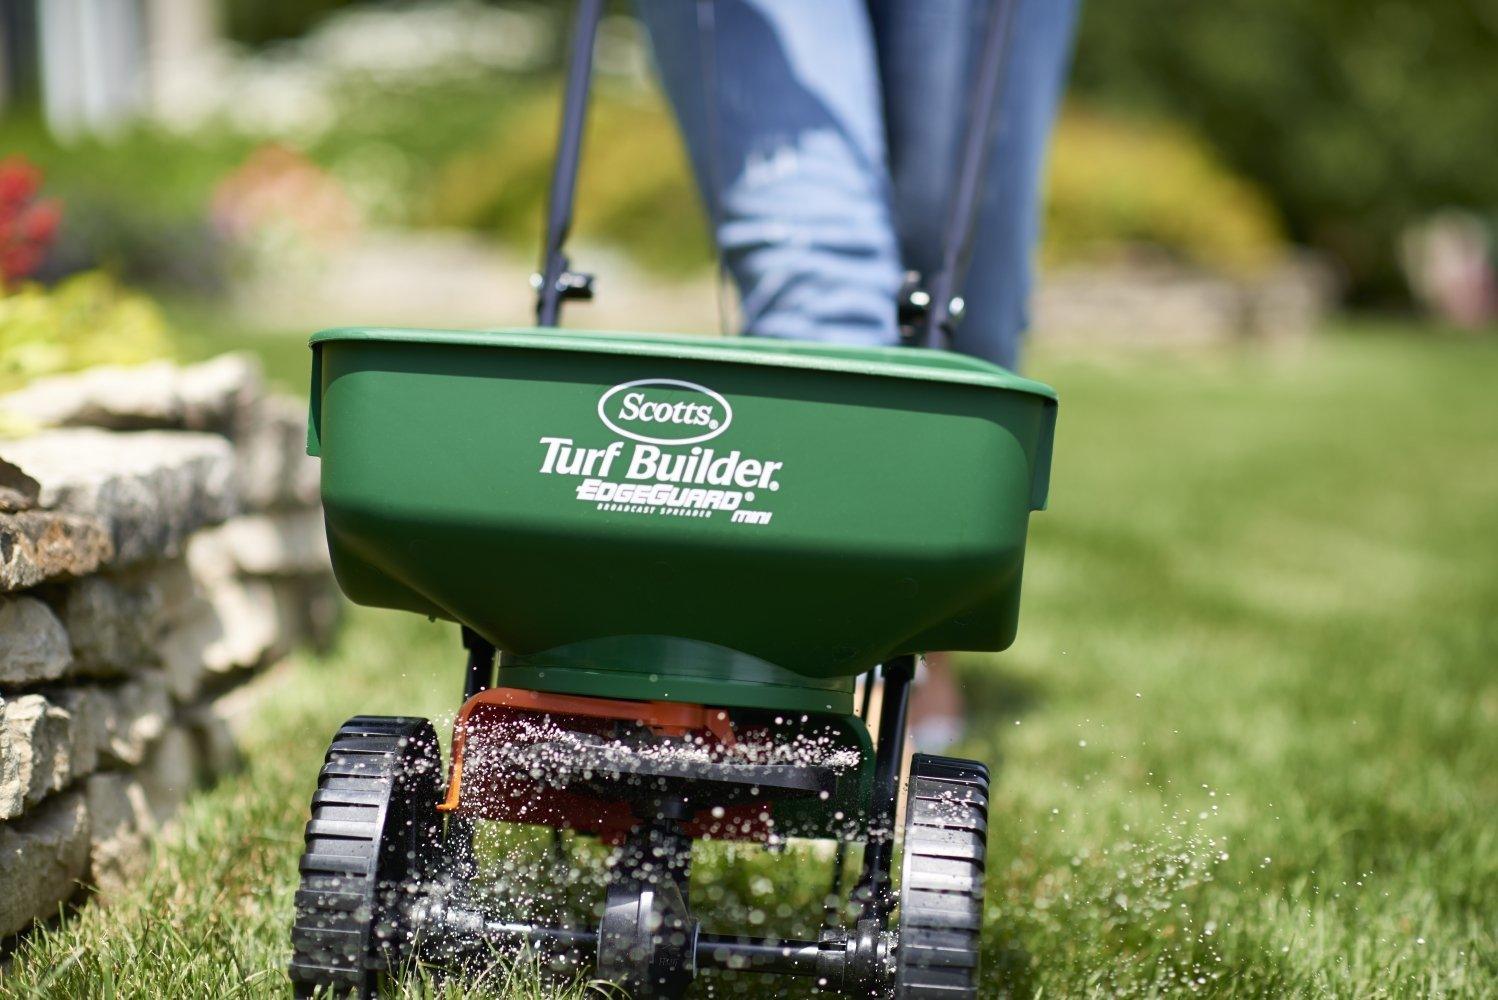 A good [seed spreader](http://www.amazon.com/Scotts-76121-Turf-Builder-EdgeGuard/dp/B002YPS1KK?tag=toolsandtoys-20) is foundational for any healthy lawn